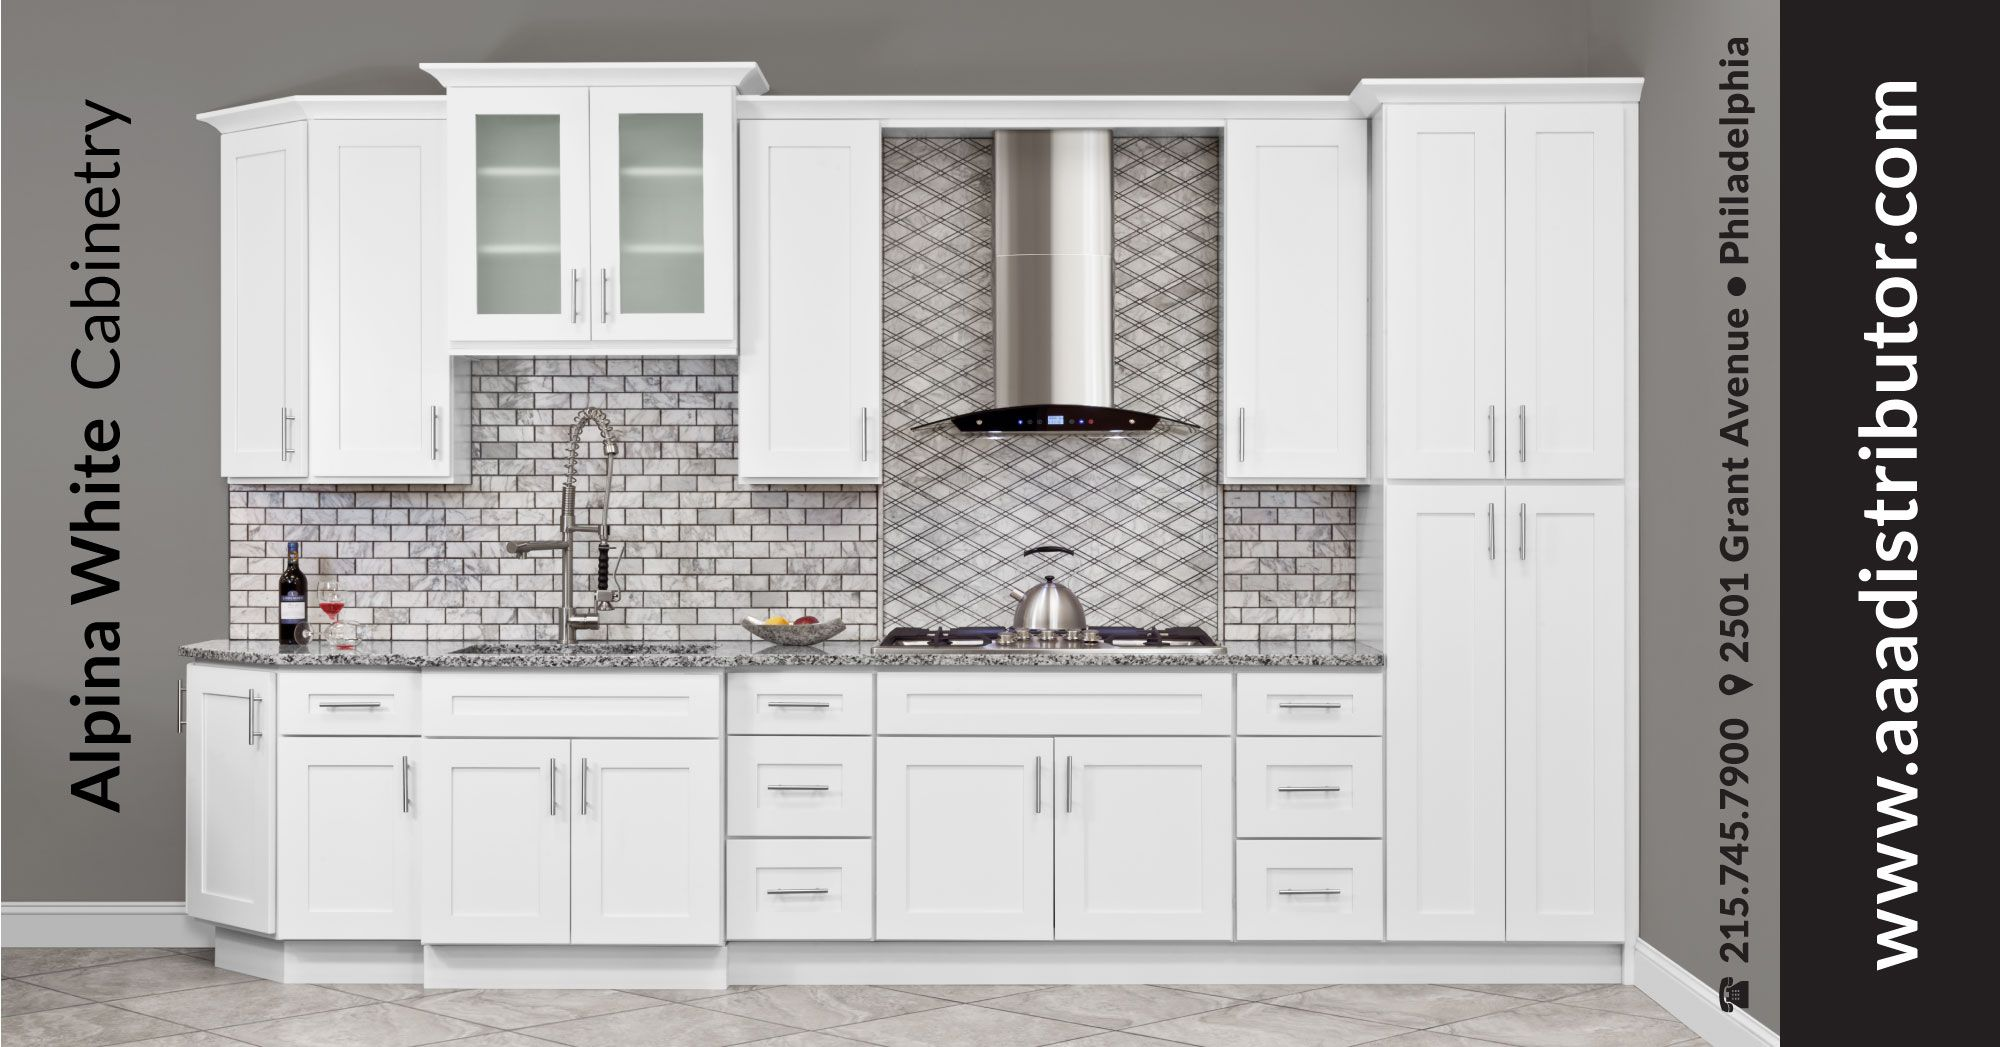 New Collection In Stock Modern White Shaker Kitchen Cabinets And Accessories White Shaker Kitchen Contemporary Kitchen Cabinets White Shaker Kitchen Cabinets